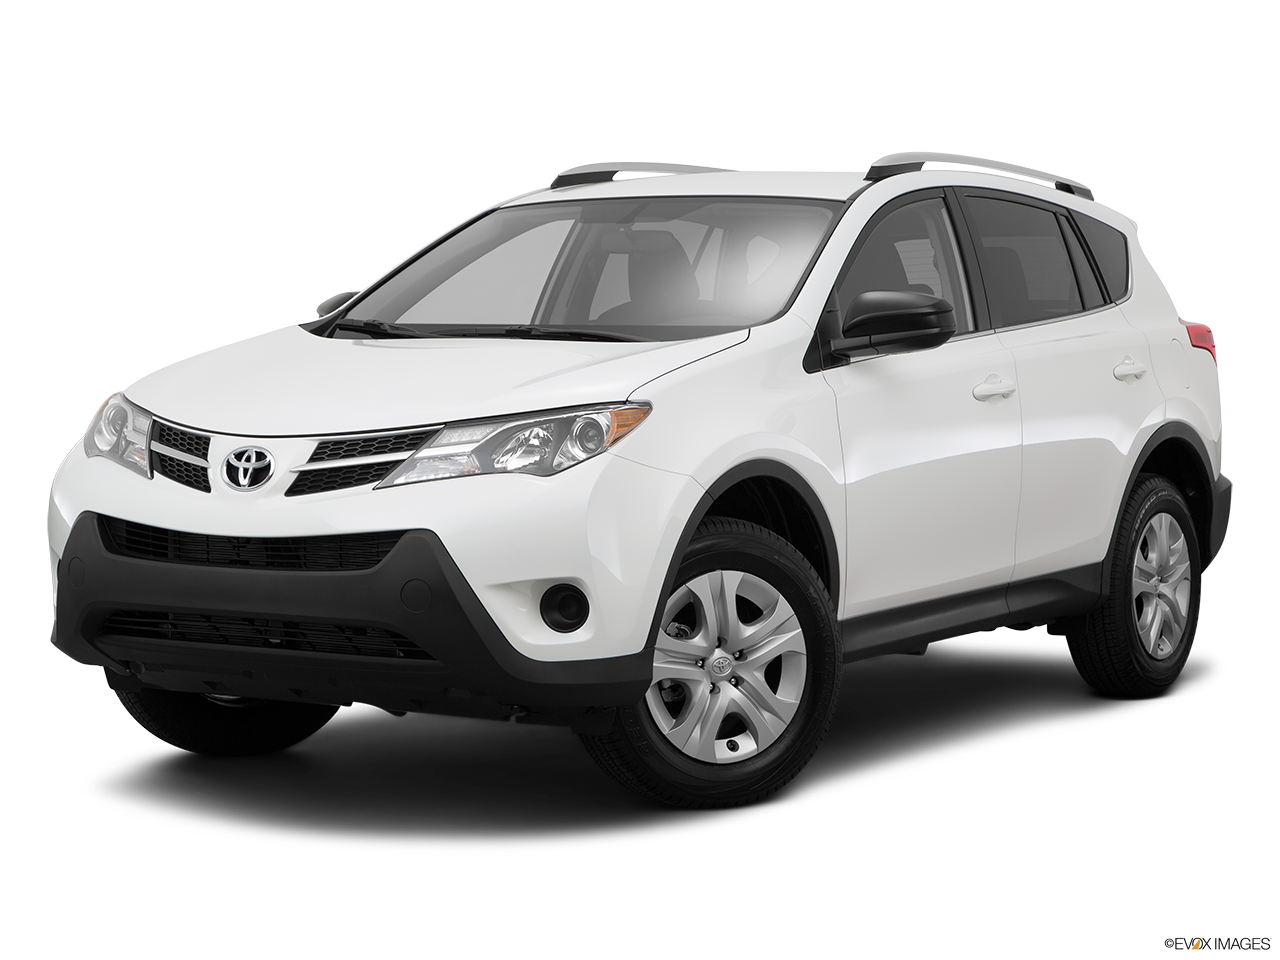 2015 toyota rav4 dealer serving los angeles toyota of glendale. Black Bedroom Furniture Sets. Home Design Ideas